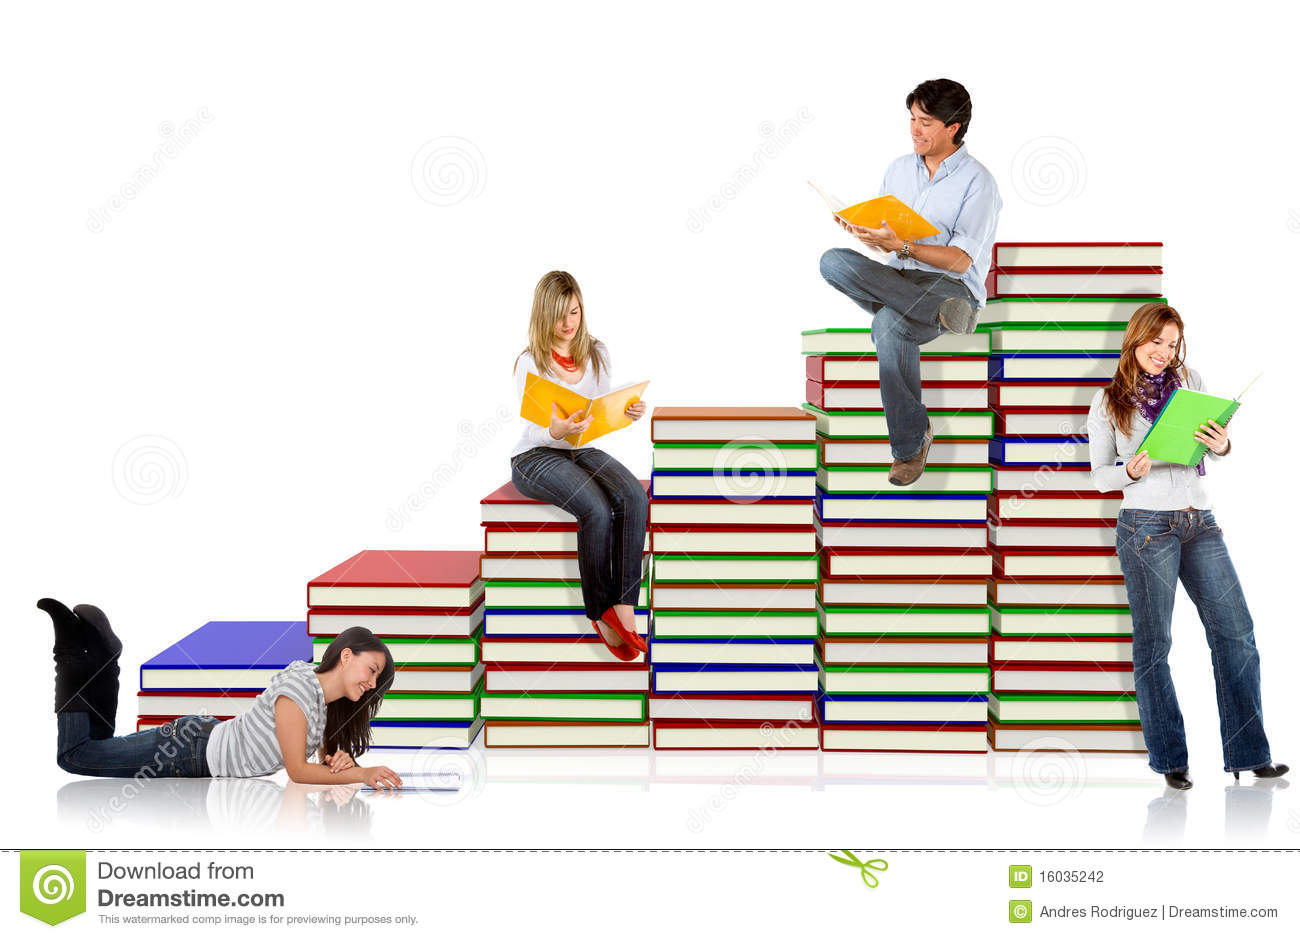 Students around a pile of books - isolated over a white background.